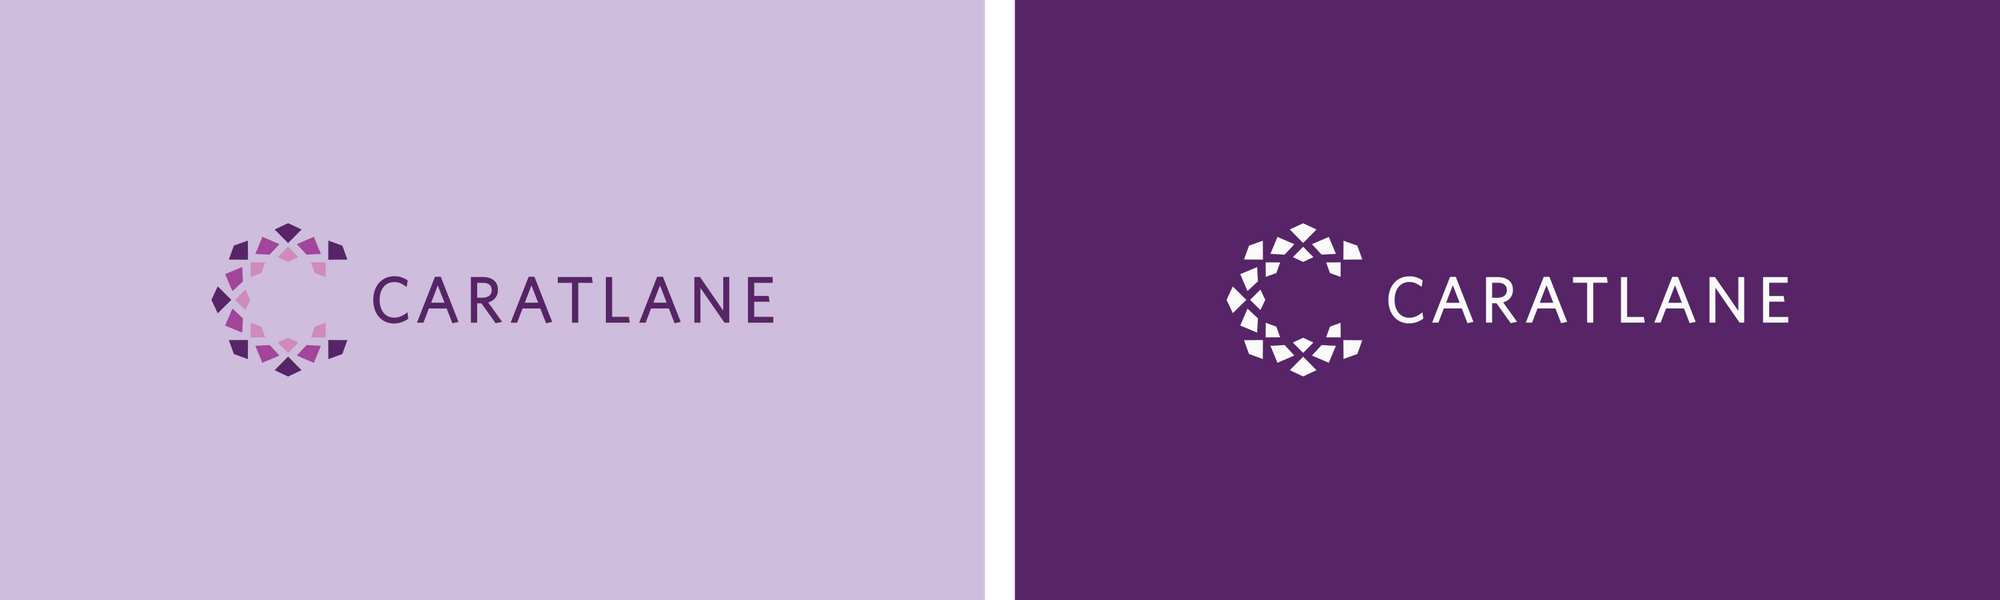 Logotype-color.png